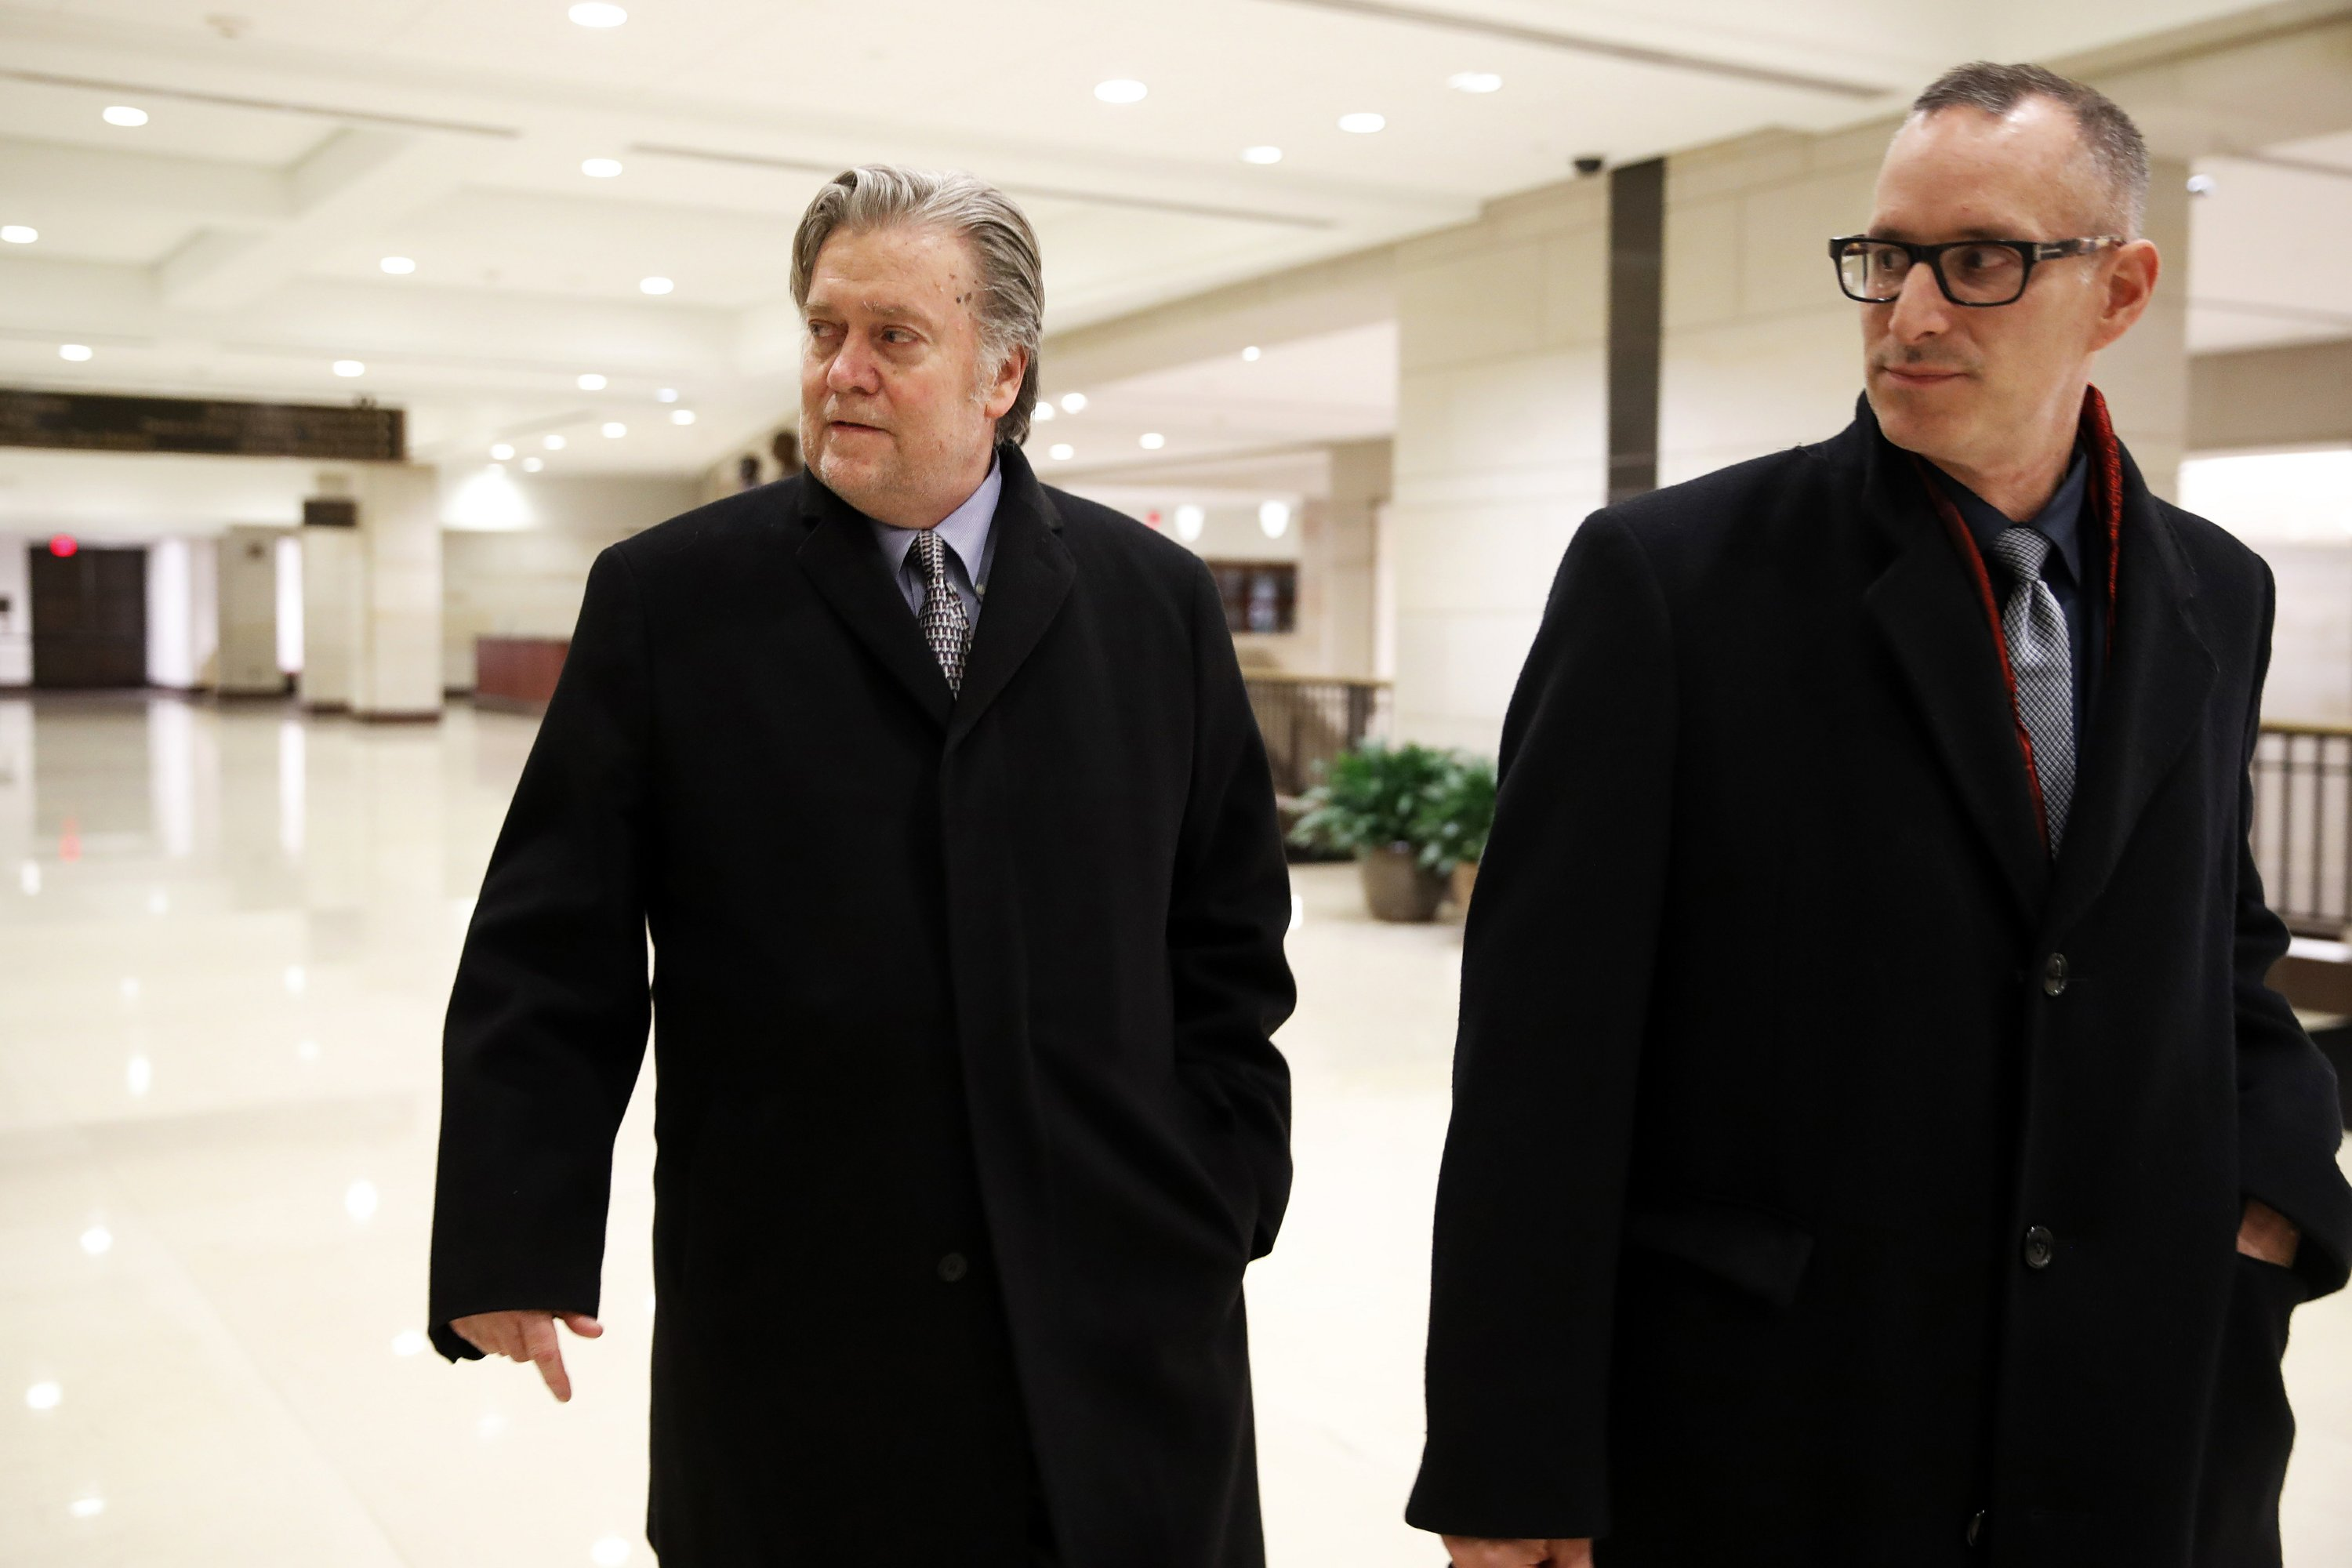 AP Sources: WH directed Bannon silence in House interview